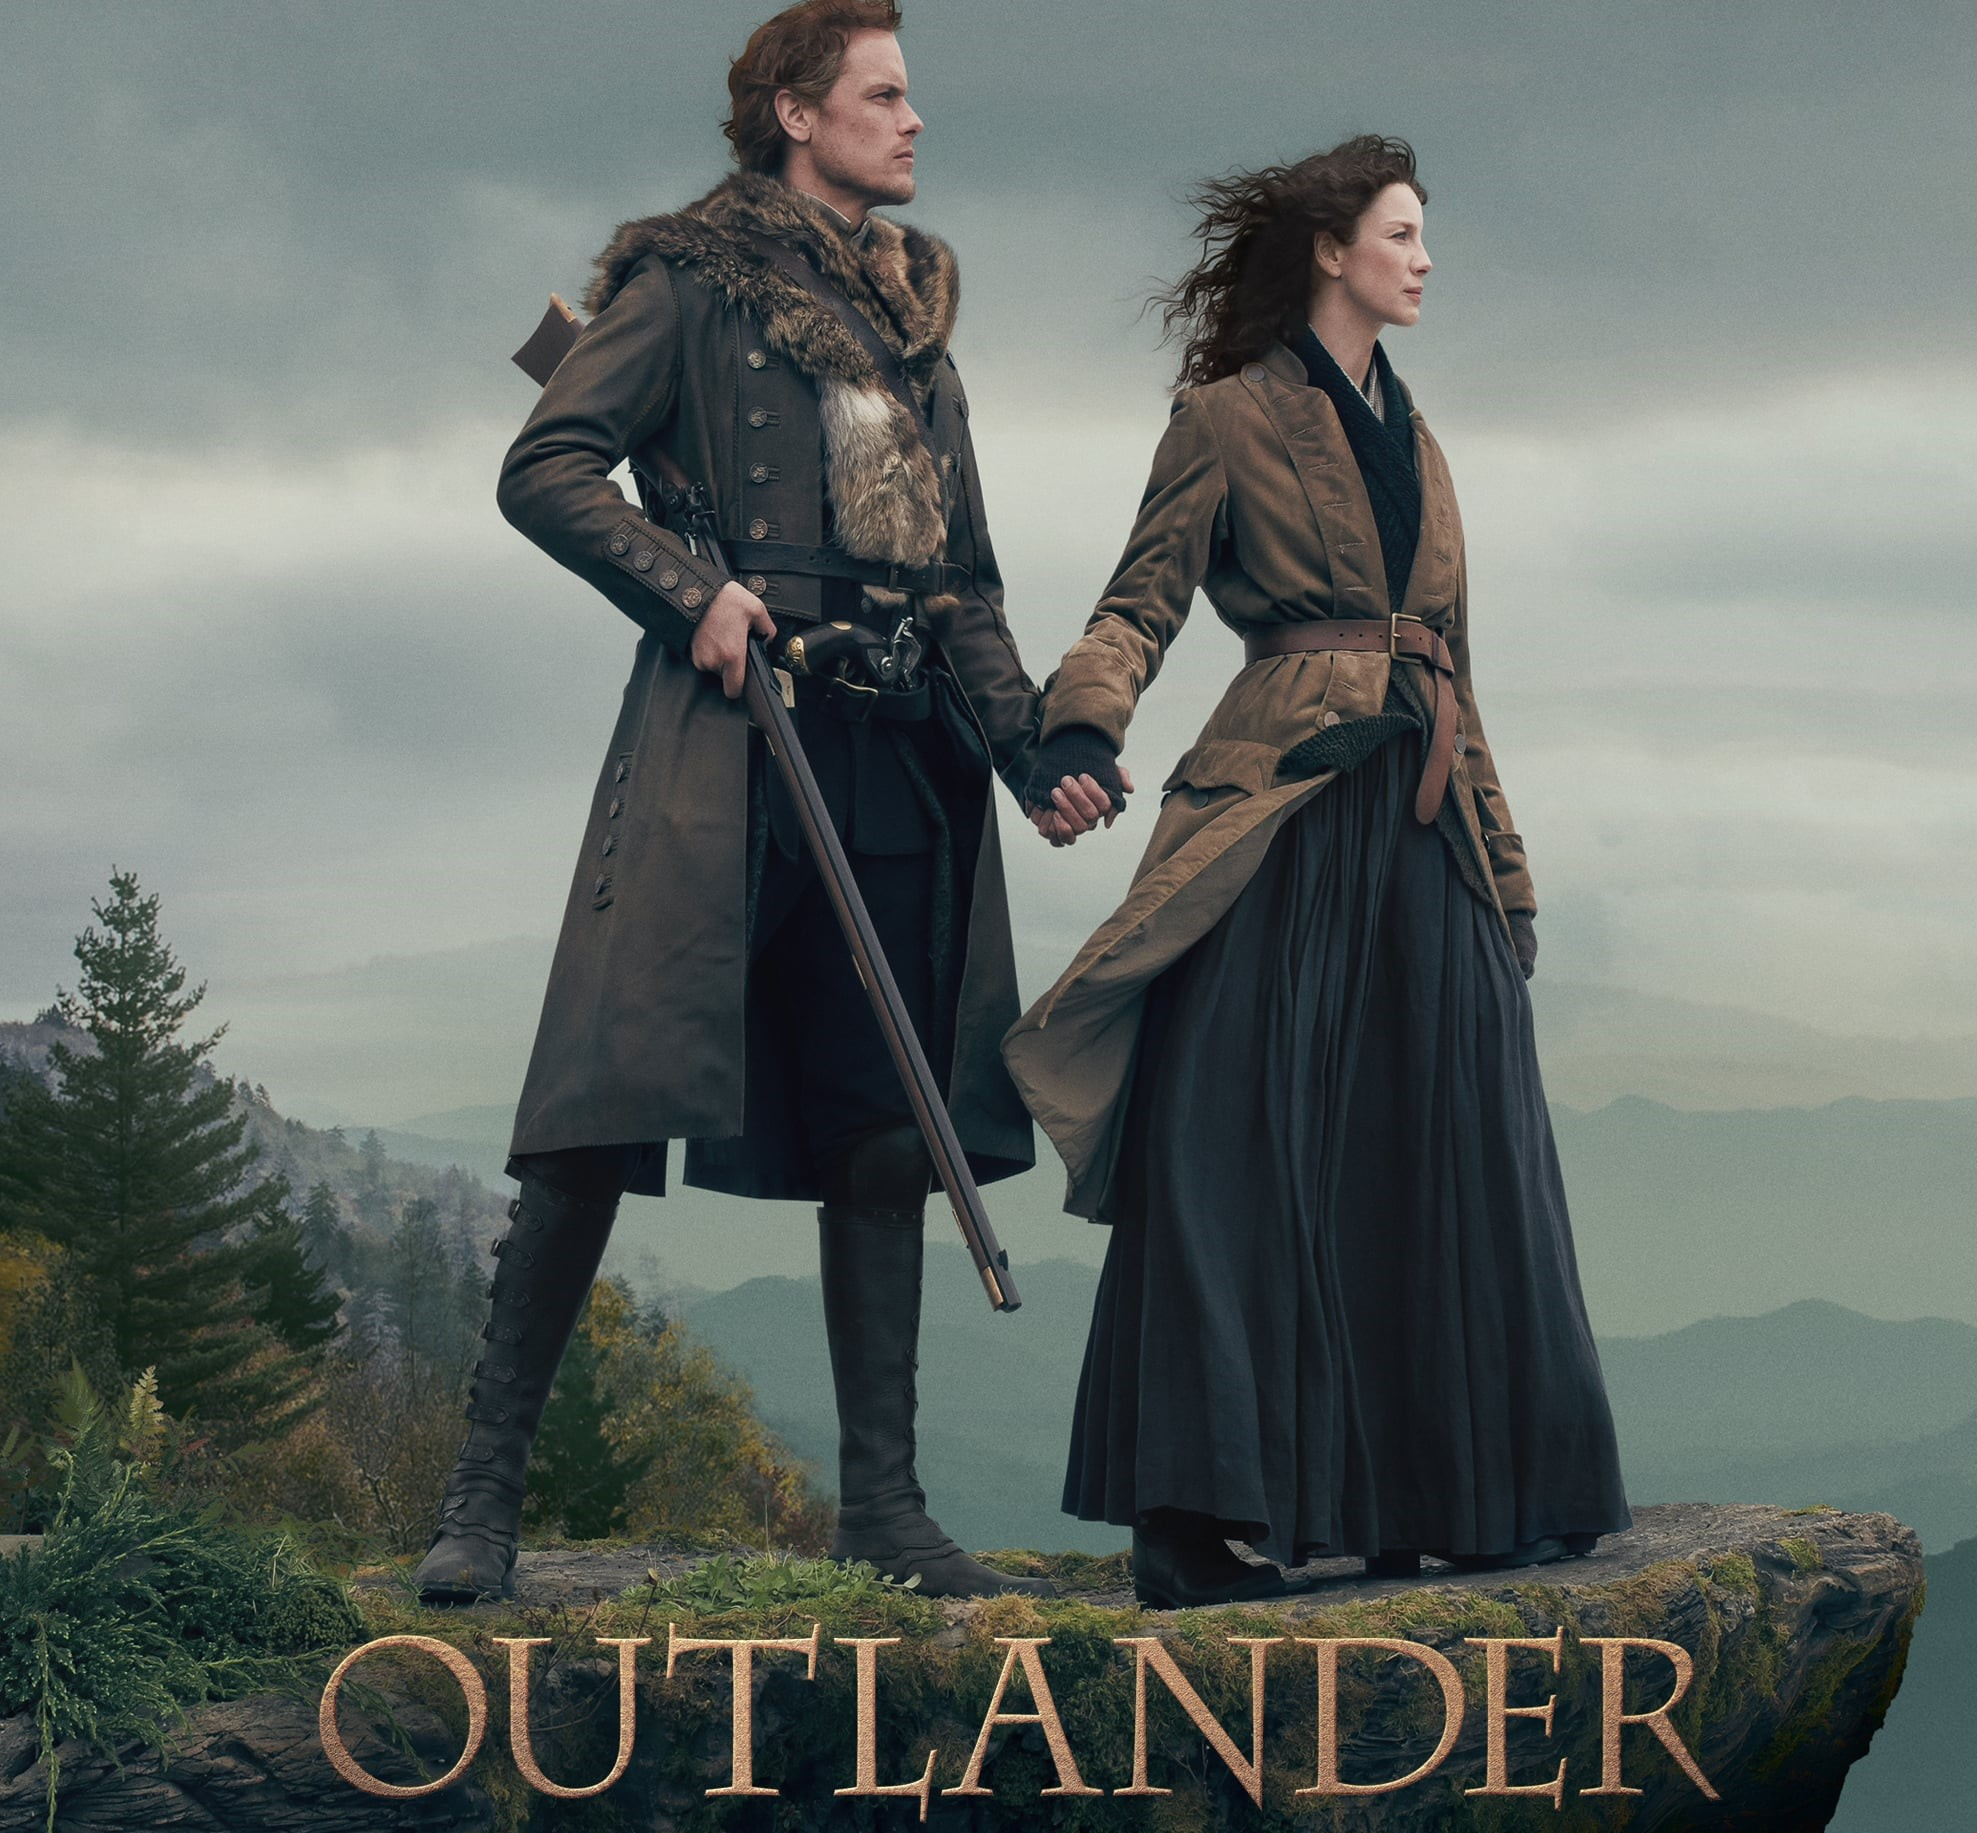 Title: Outlander below a picture of a man and woman standing together on a ledge